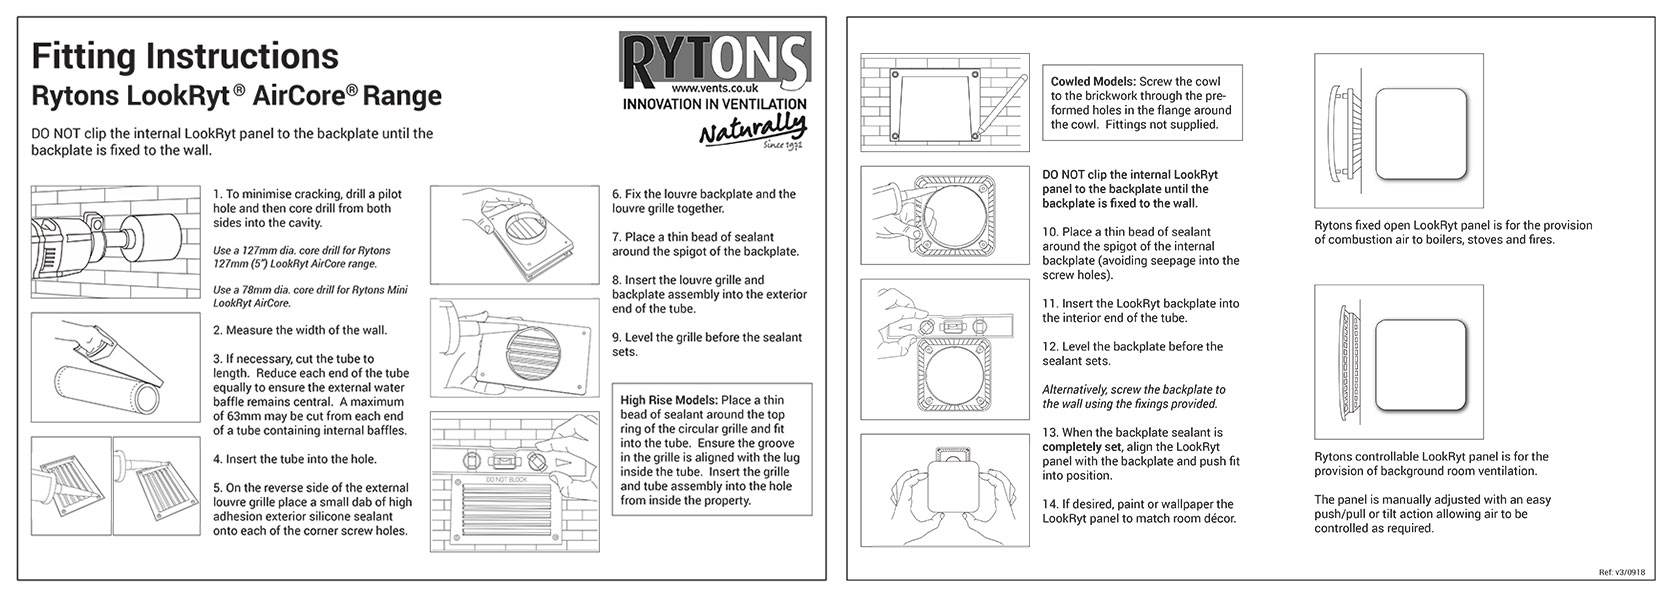 Rytons LookRyt AirCore Fitting Instructions